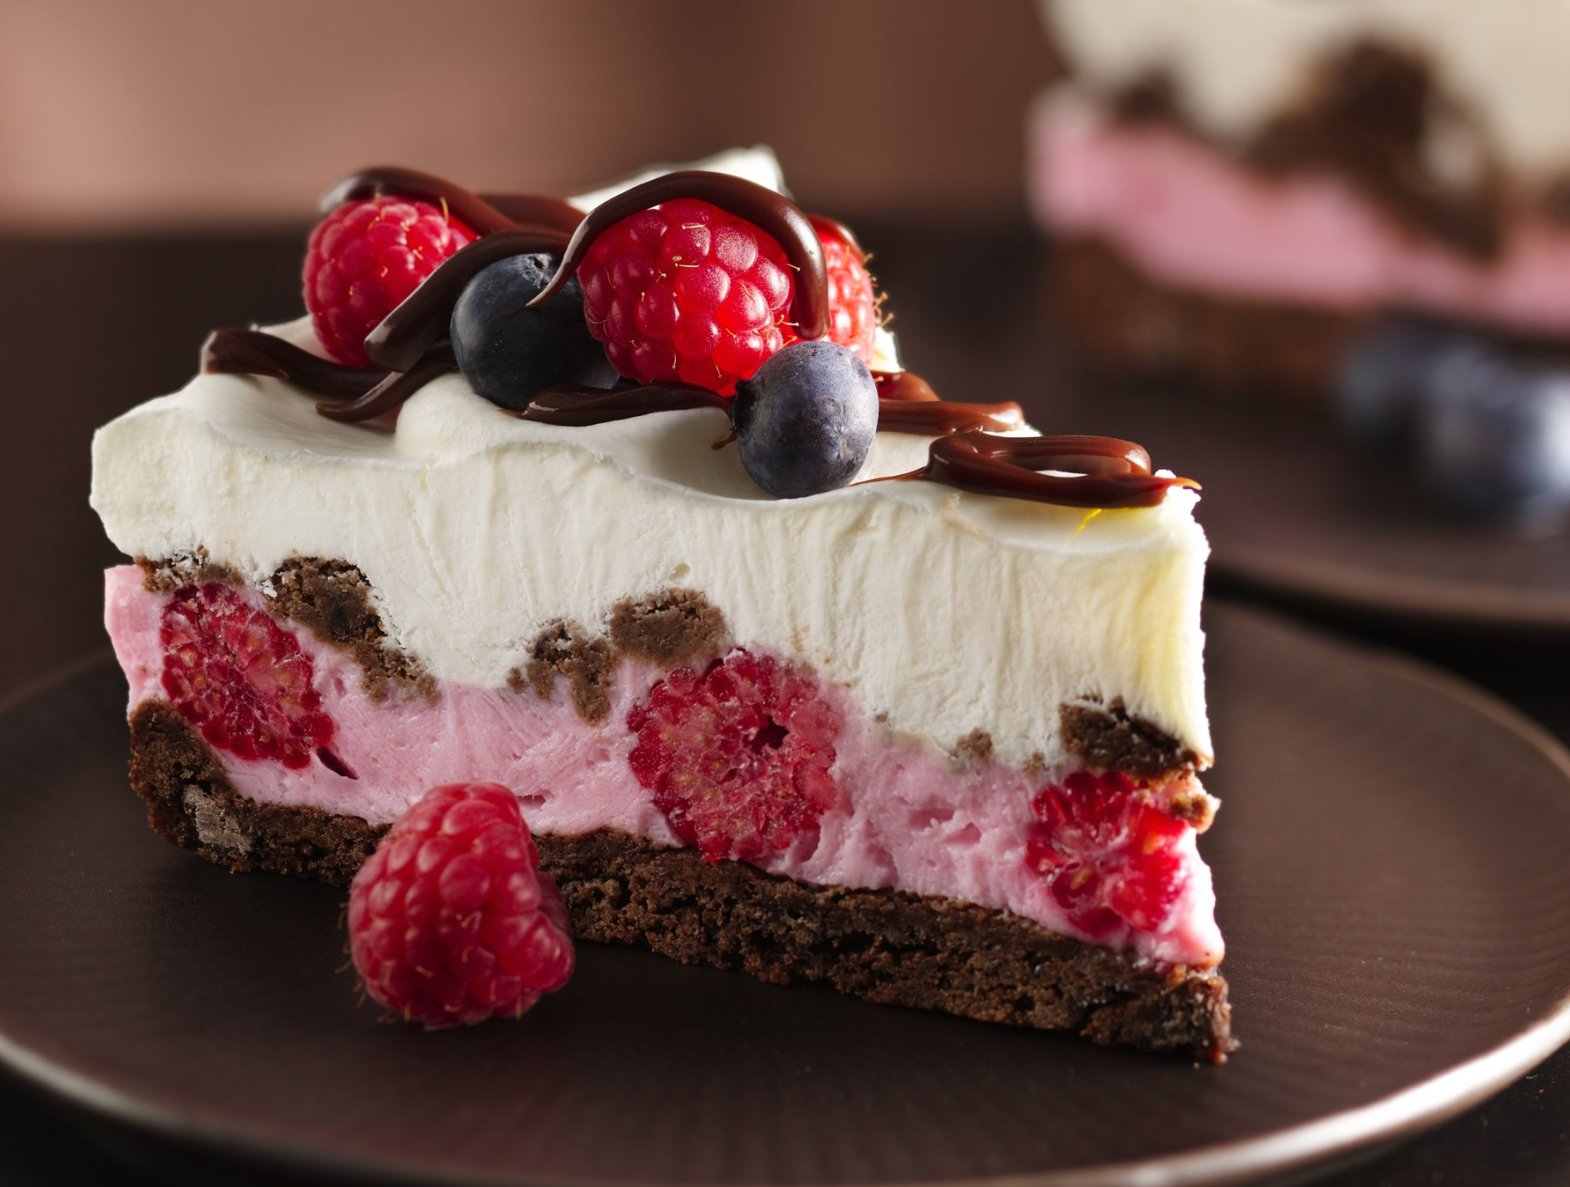 All Kinds Of Recipes D Chocolate And Berries Yogurt